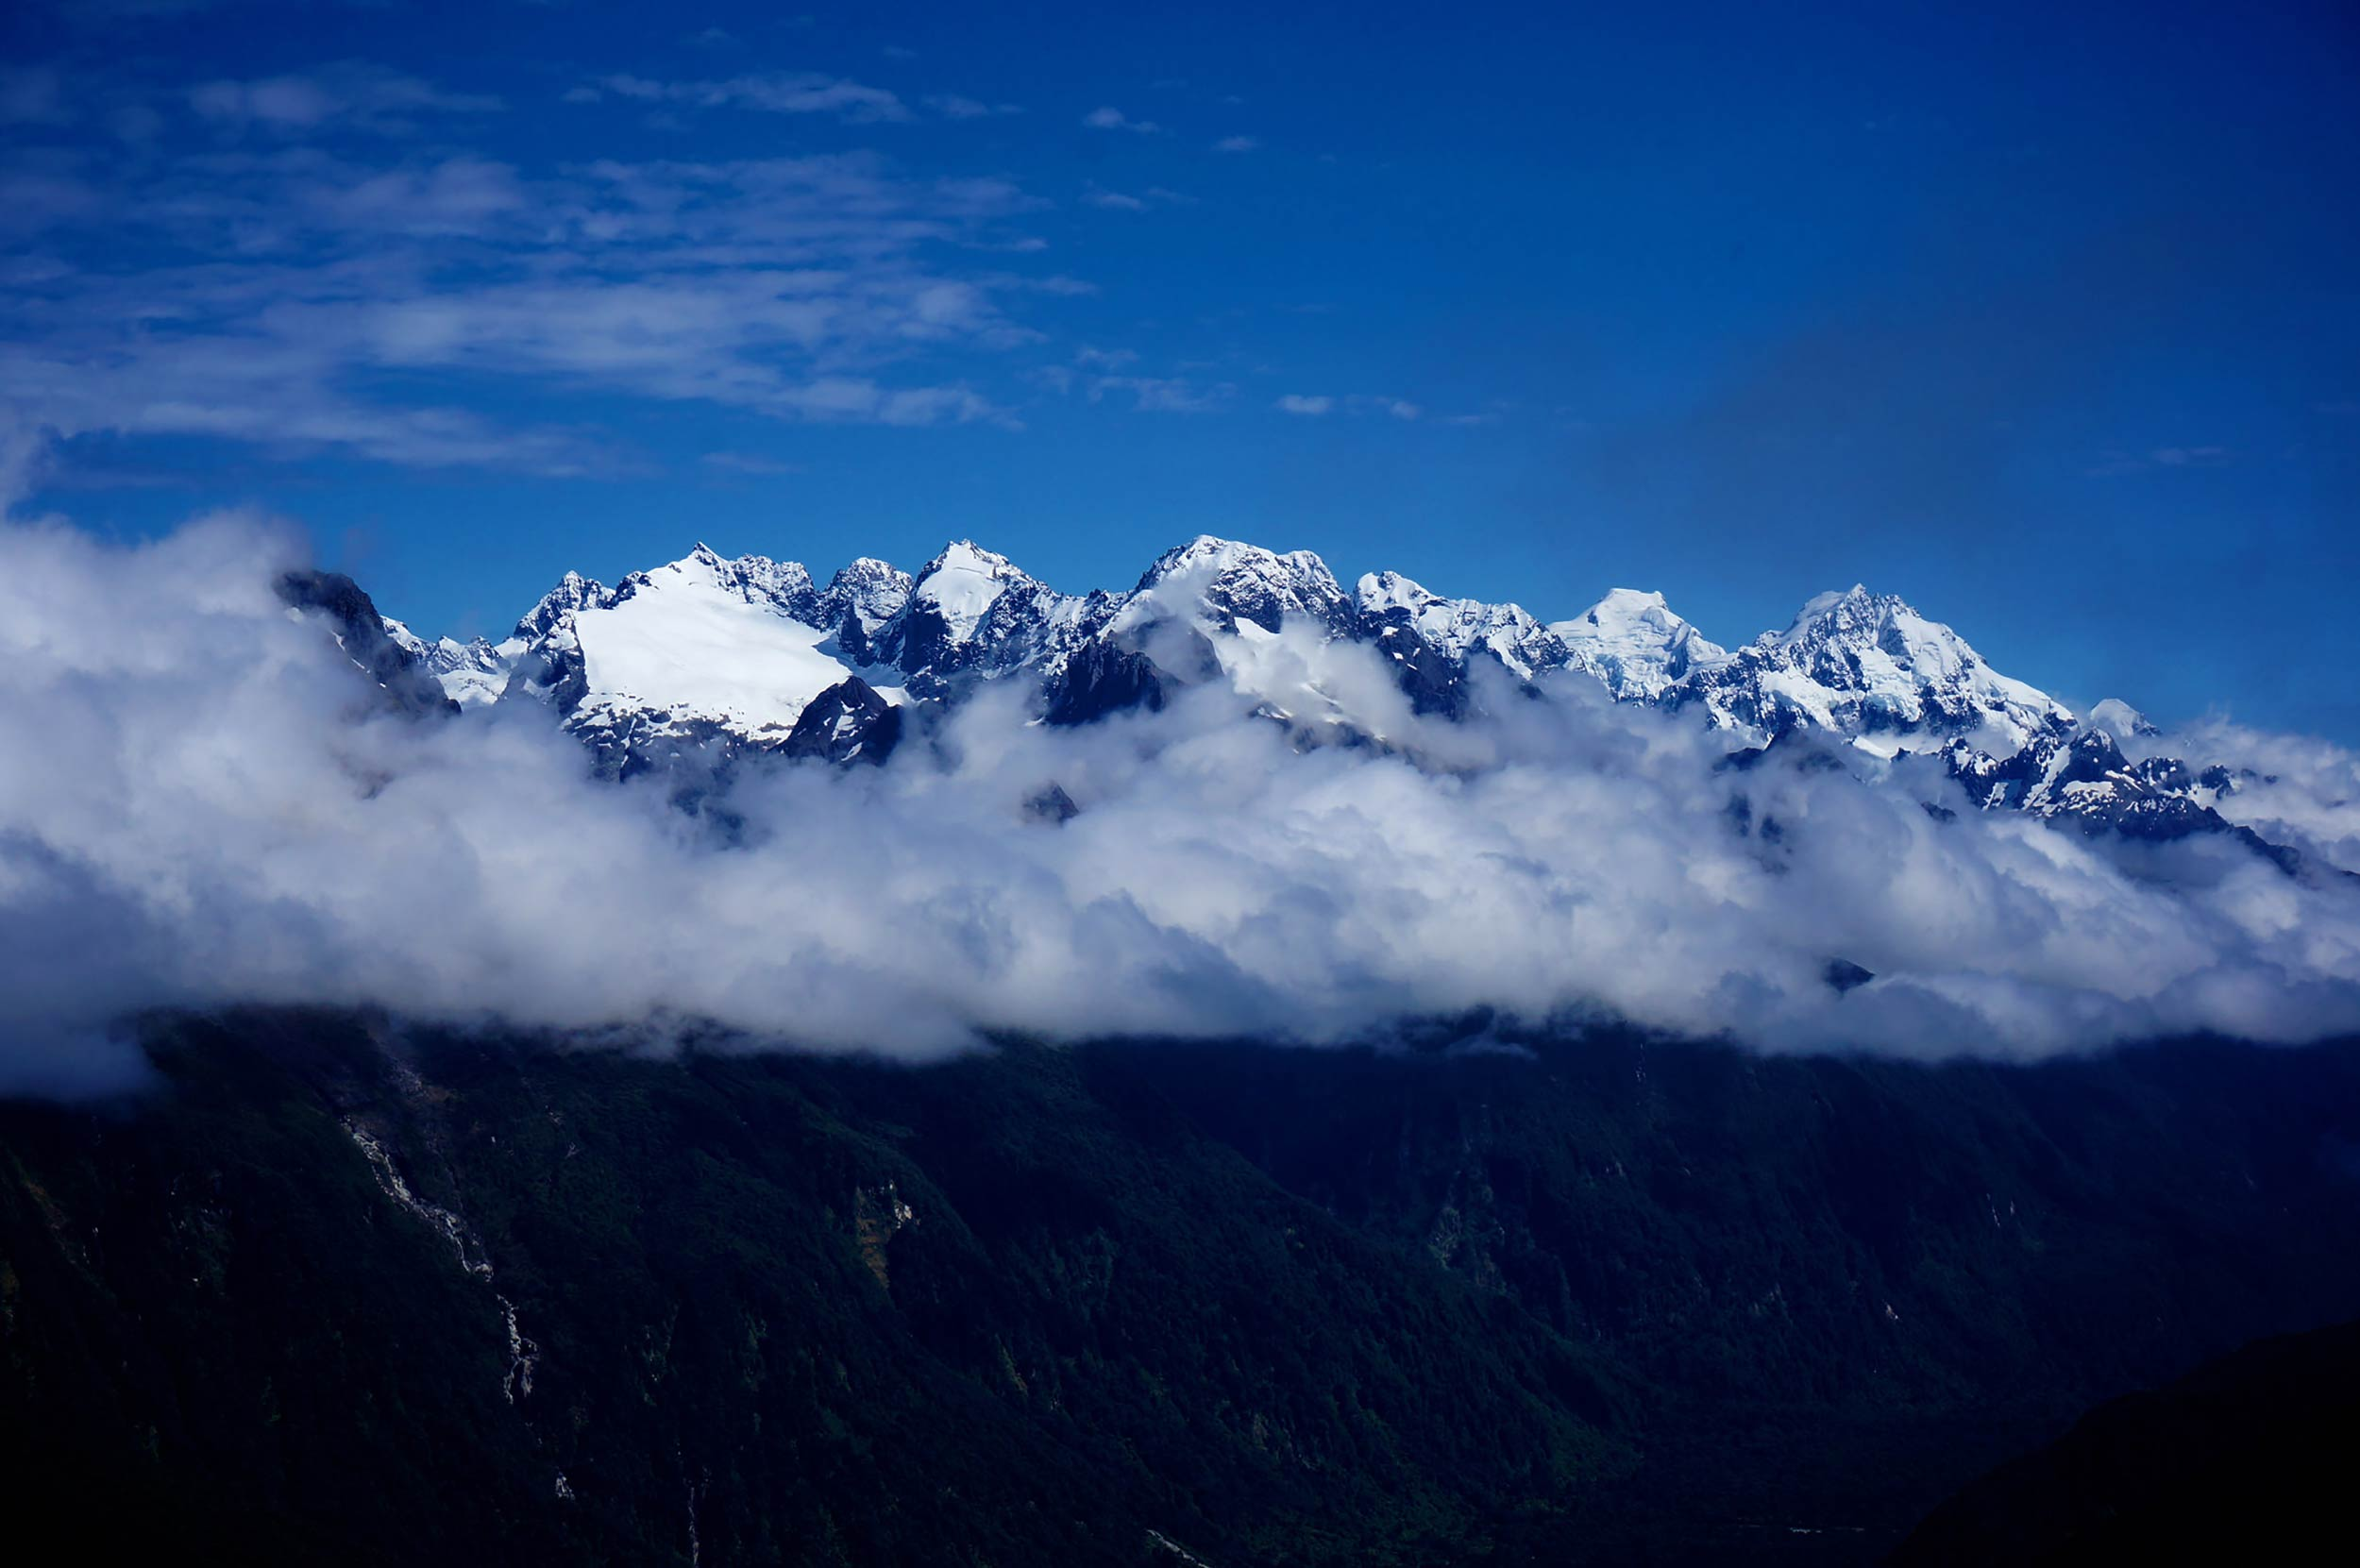 routeburn_track_moutains_above_clouds.jpg